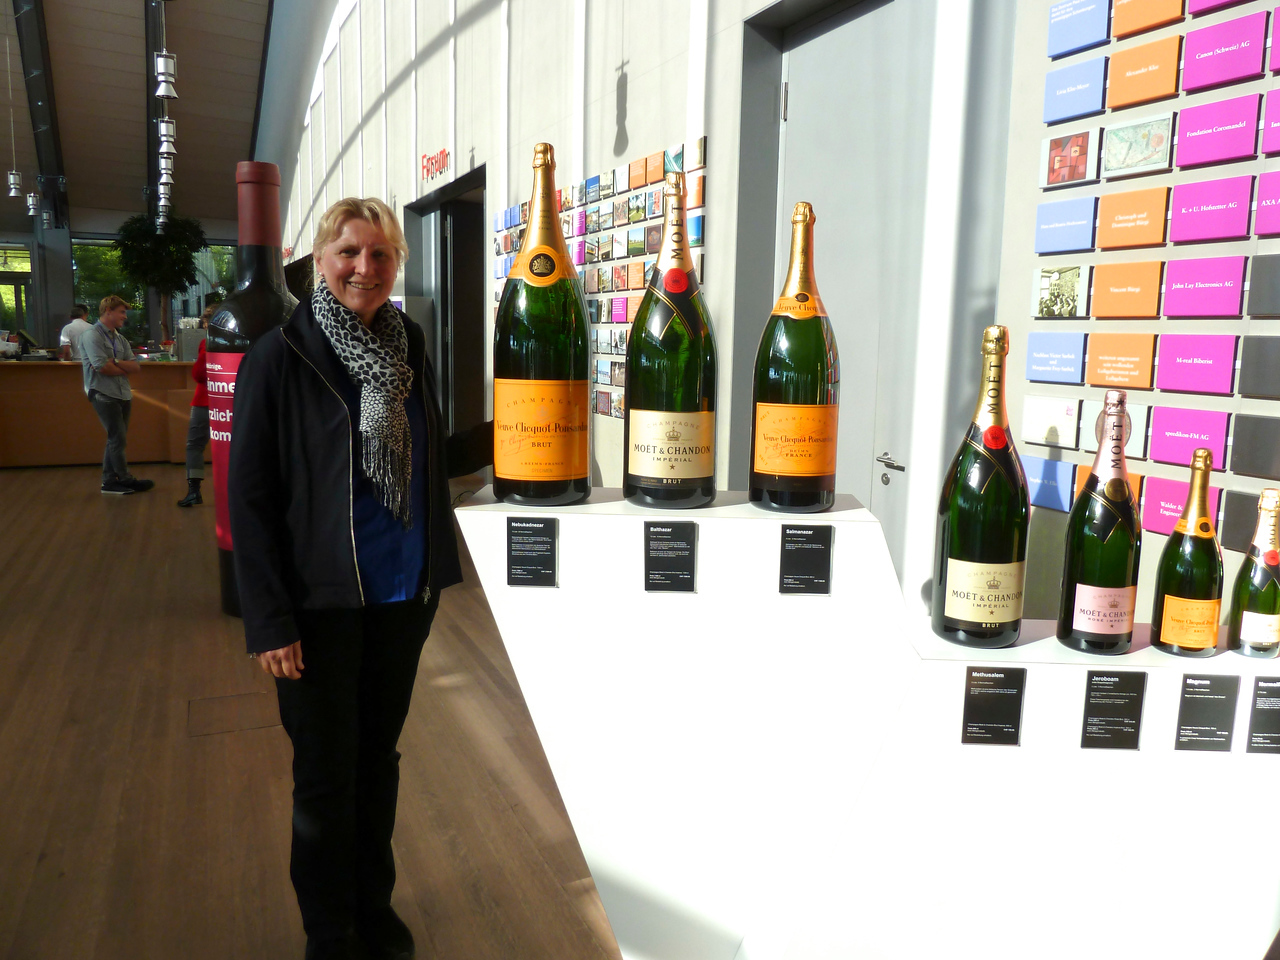 We were there just in time for a wine tasting, but no champagne, despite these gigantic bottles.